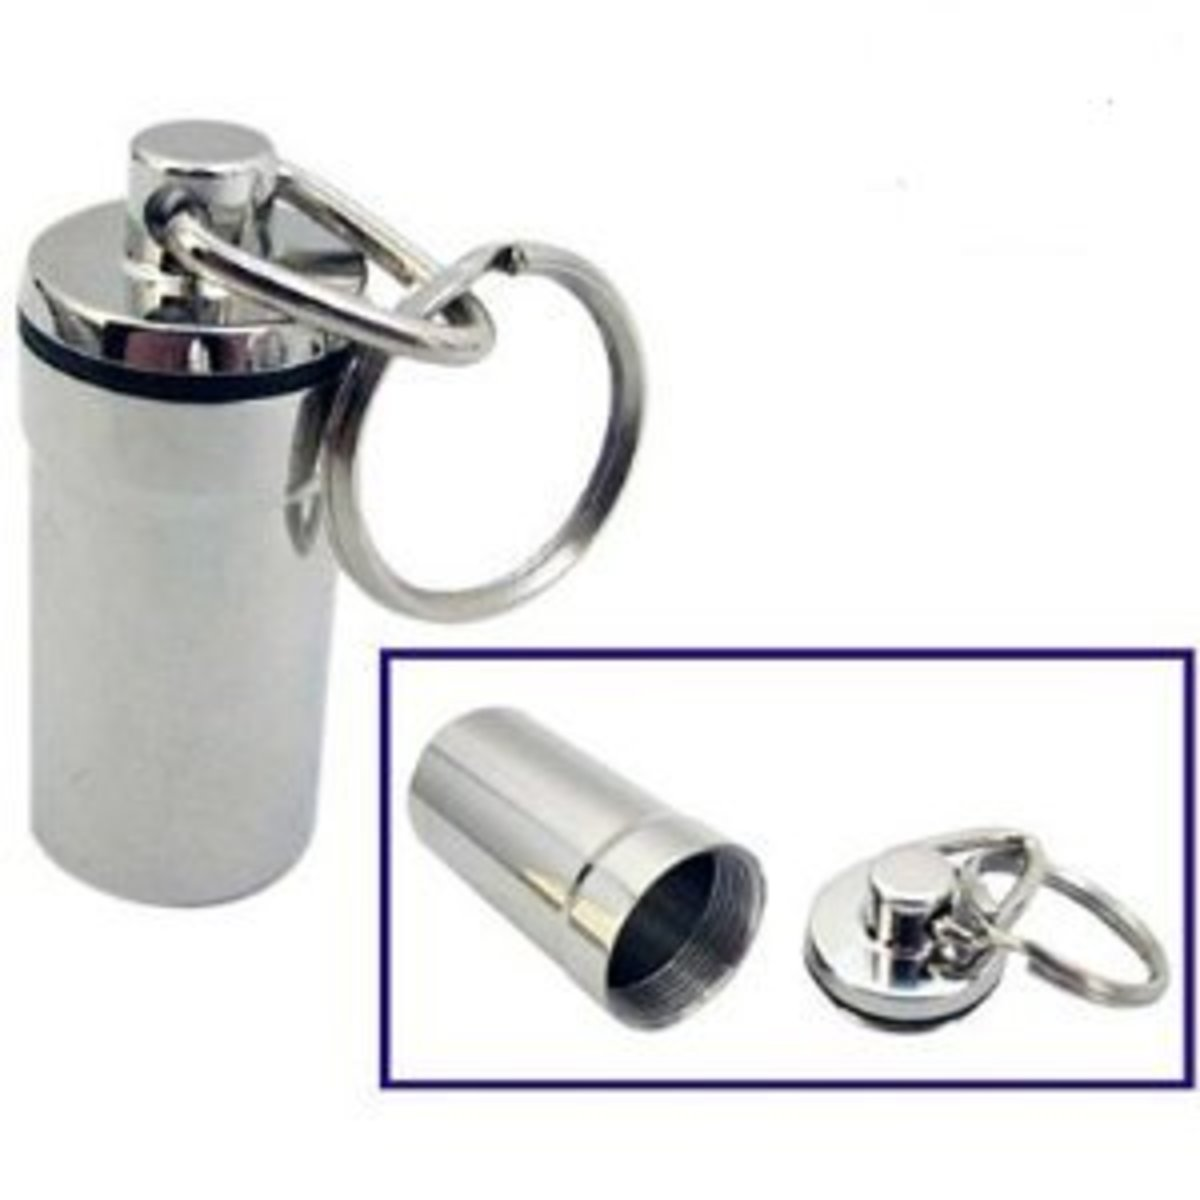 Key chain style pill container